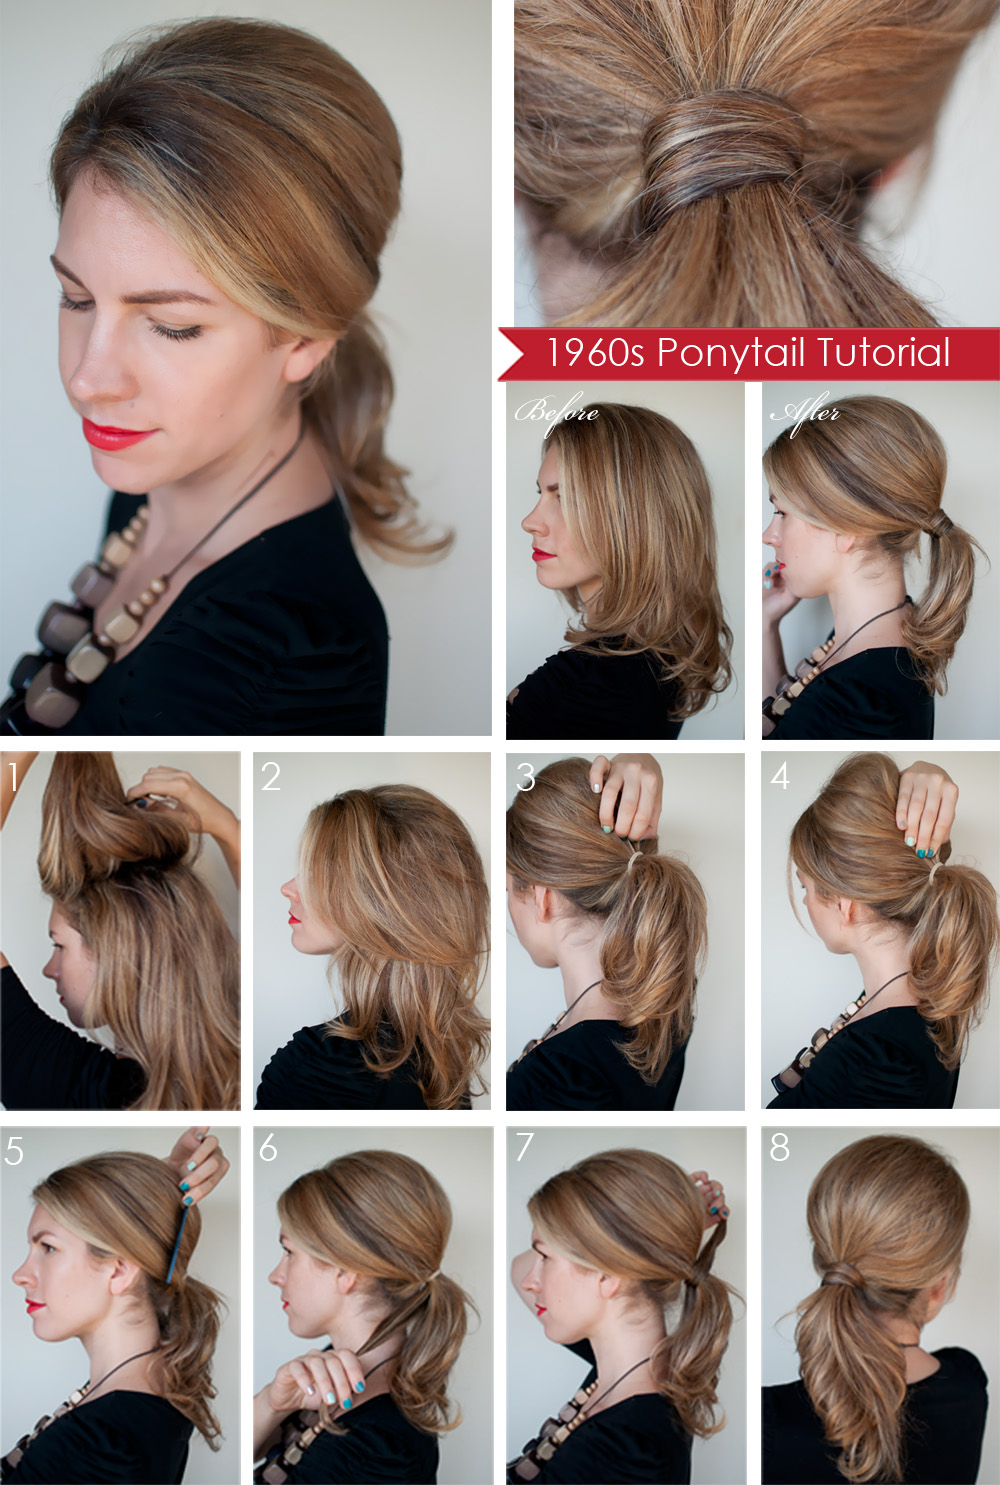 L KNAFO Do It Yourself DIY Hairstyle 1960s39 Ponytail